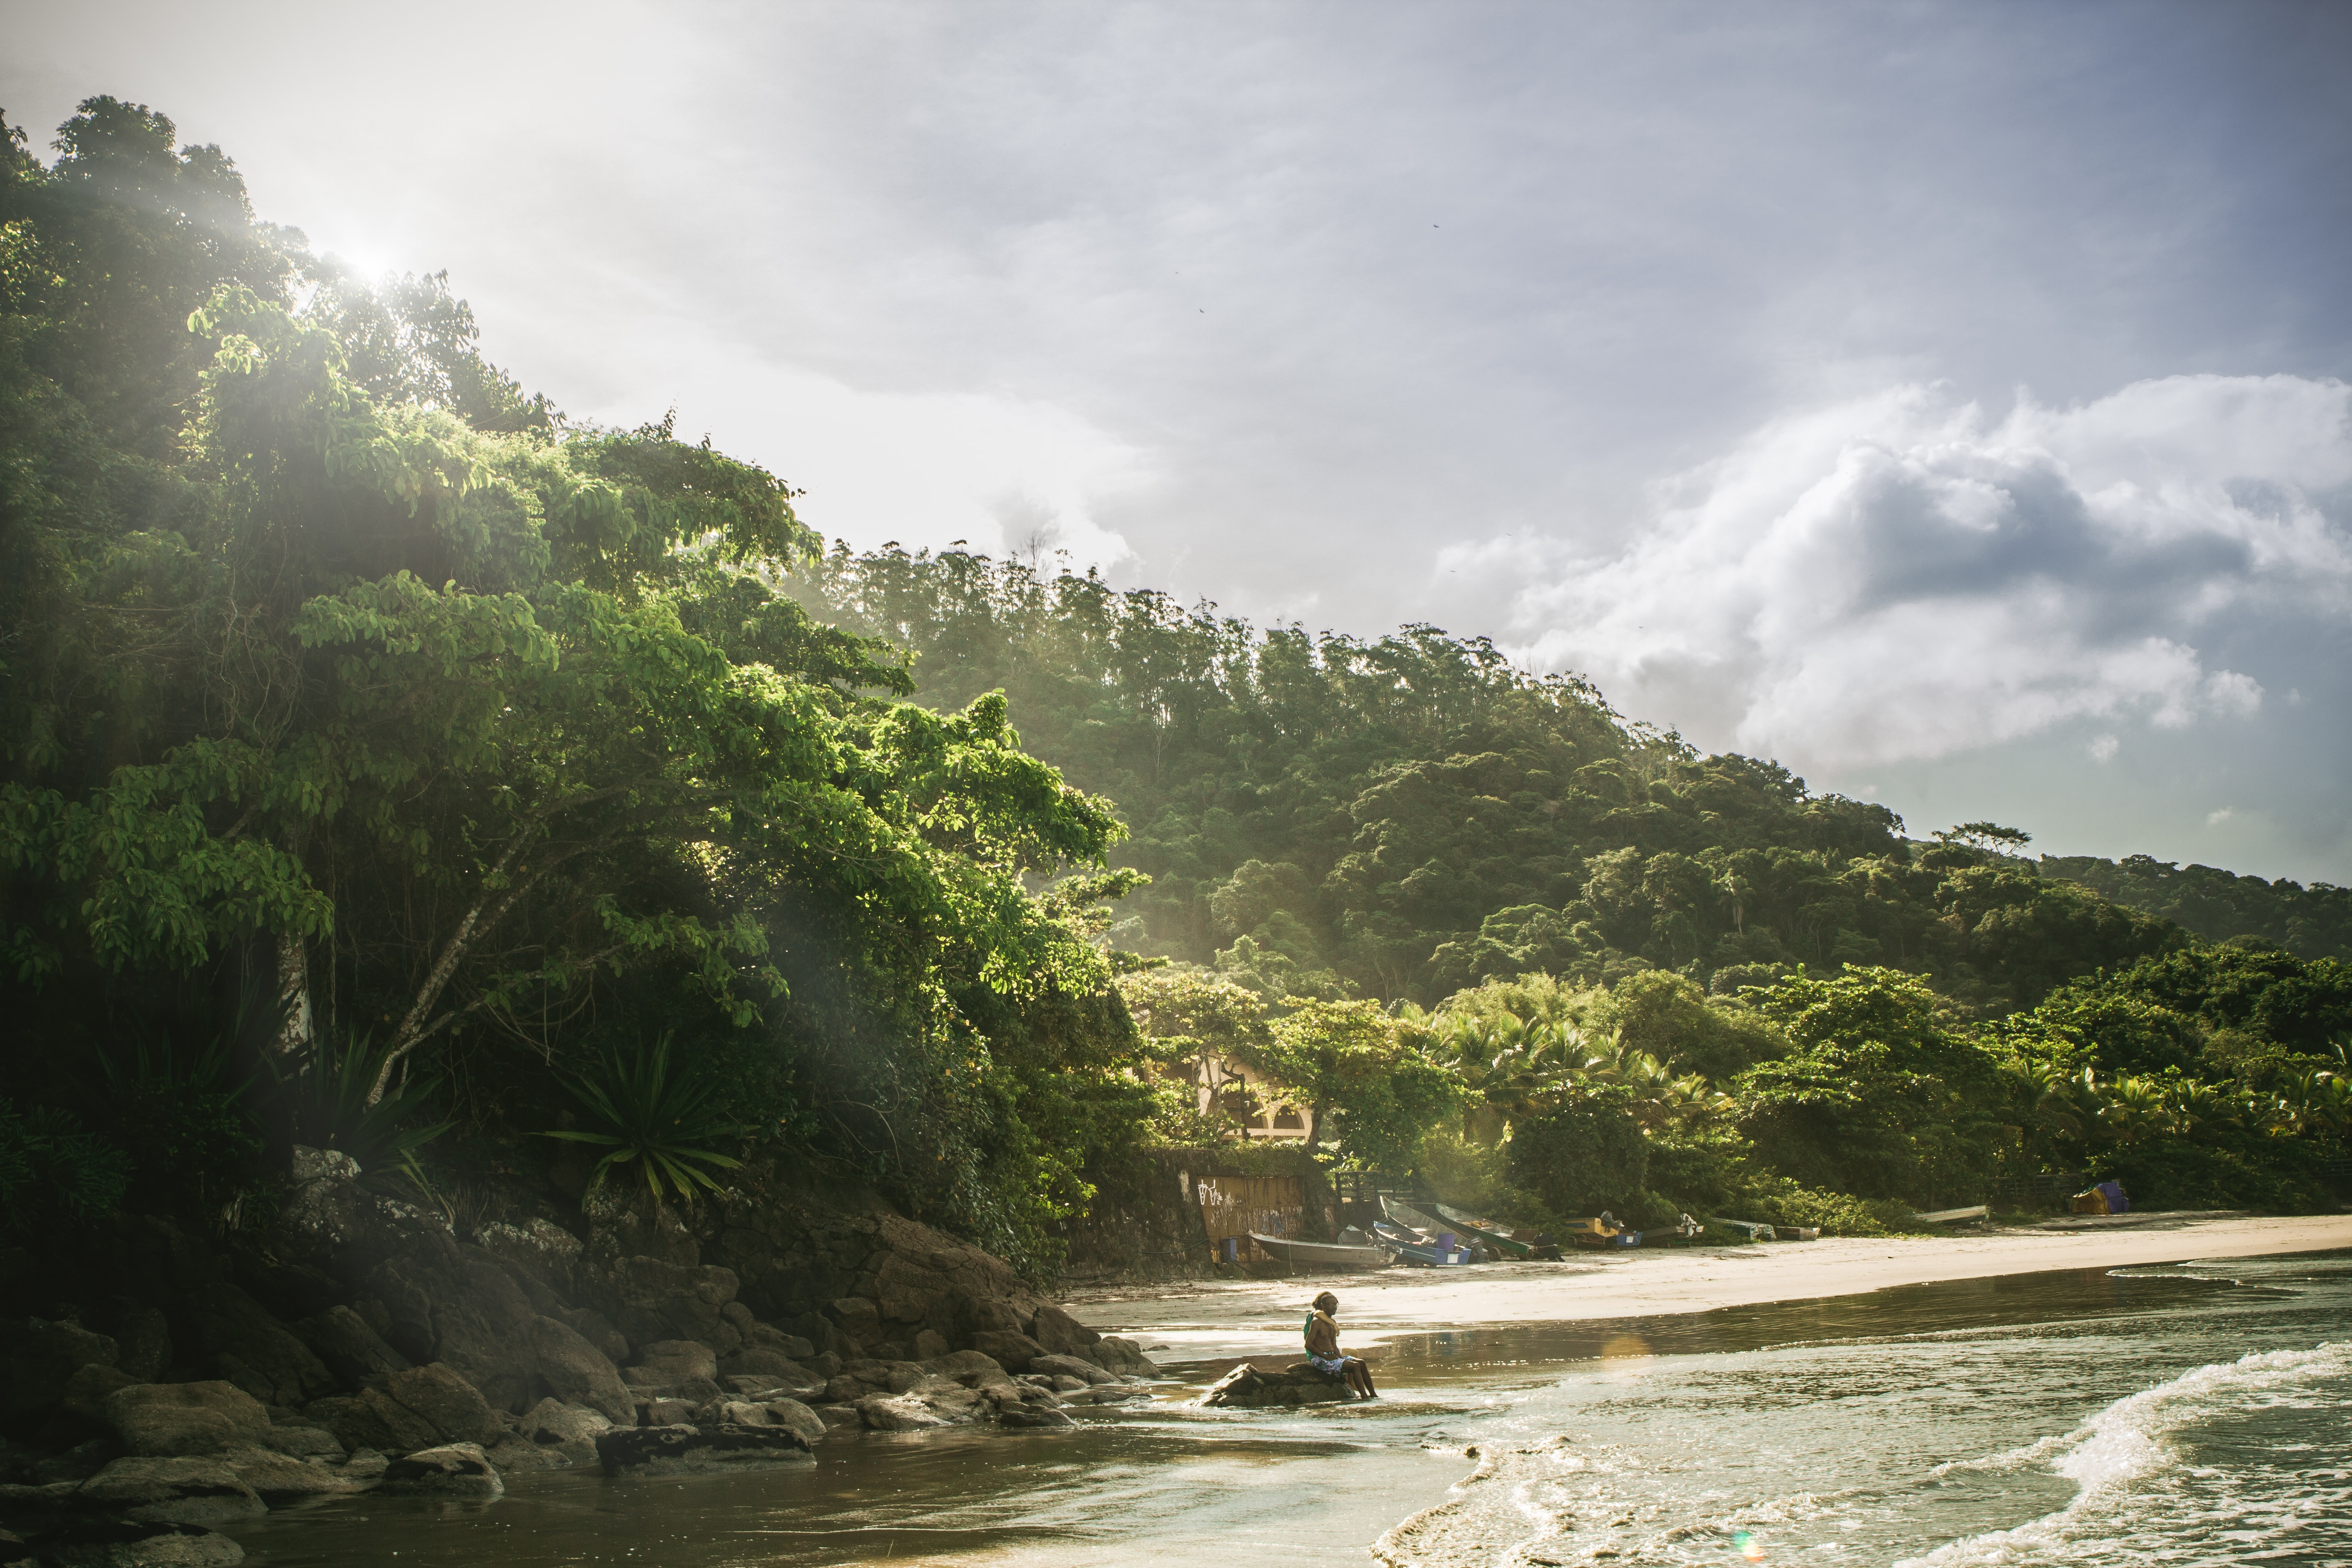 View of heavily dense forest island near beach